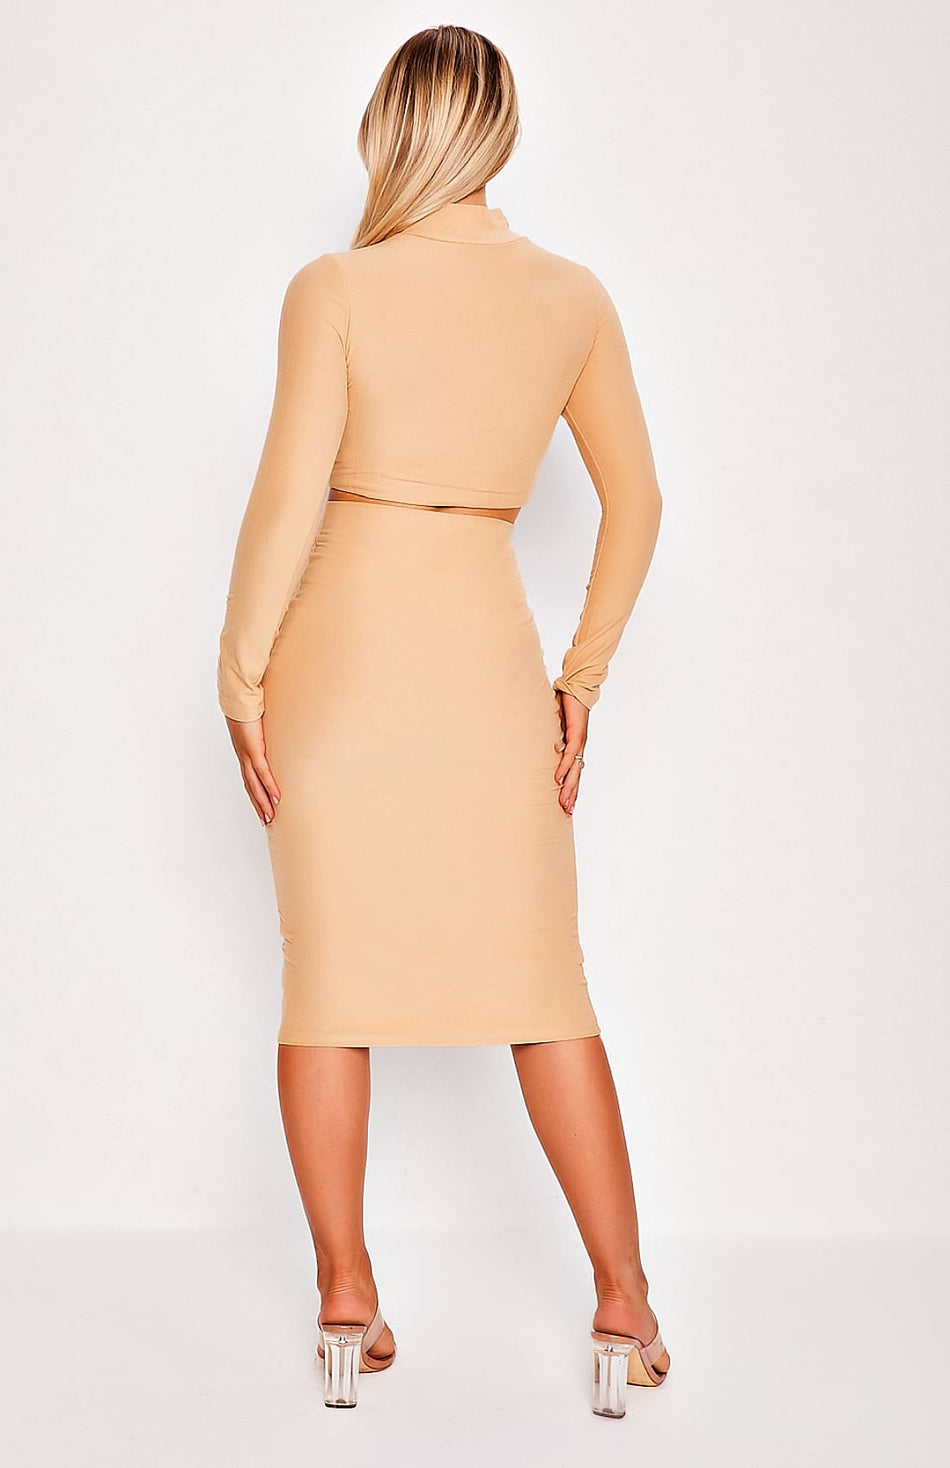 Caramel High Neck Long Sleeve Two Piece Top & Skirt Set